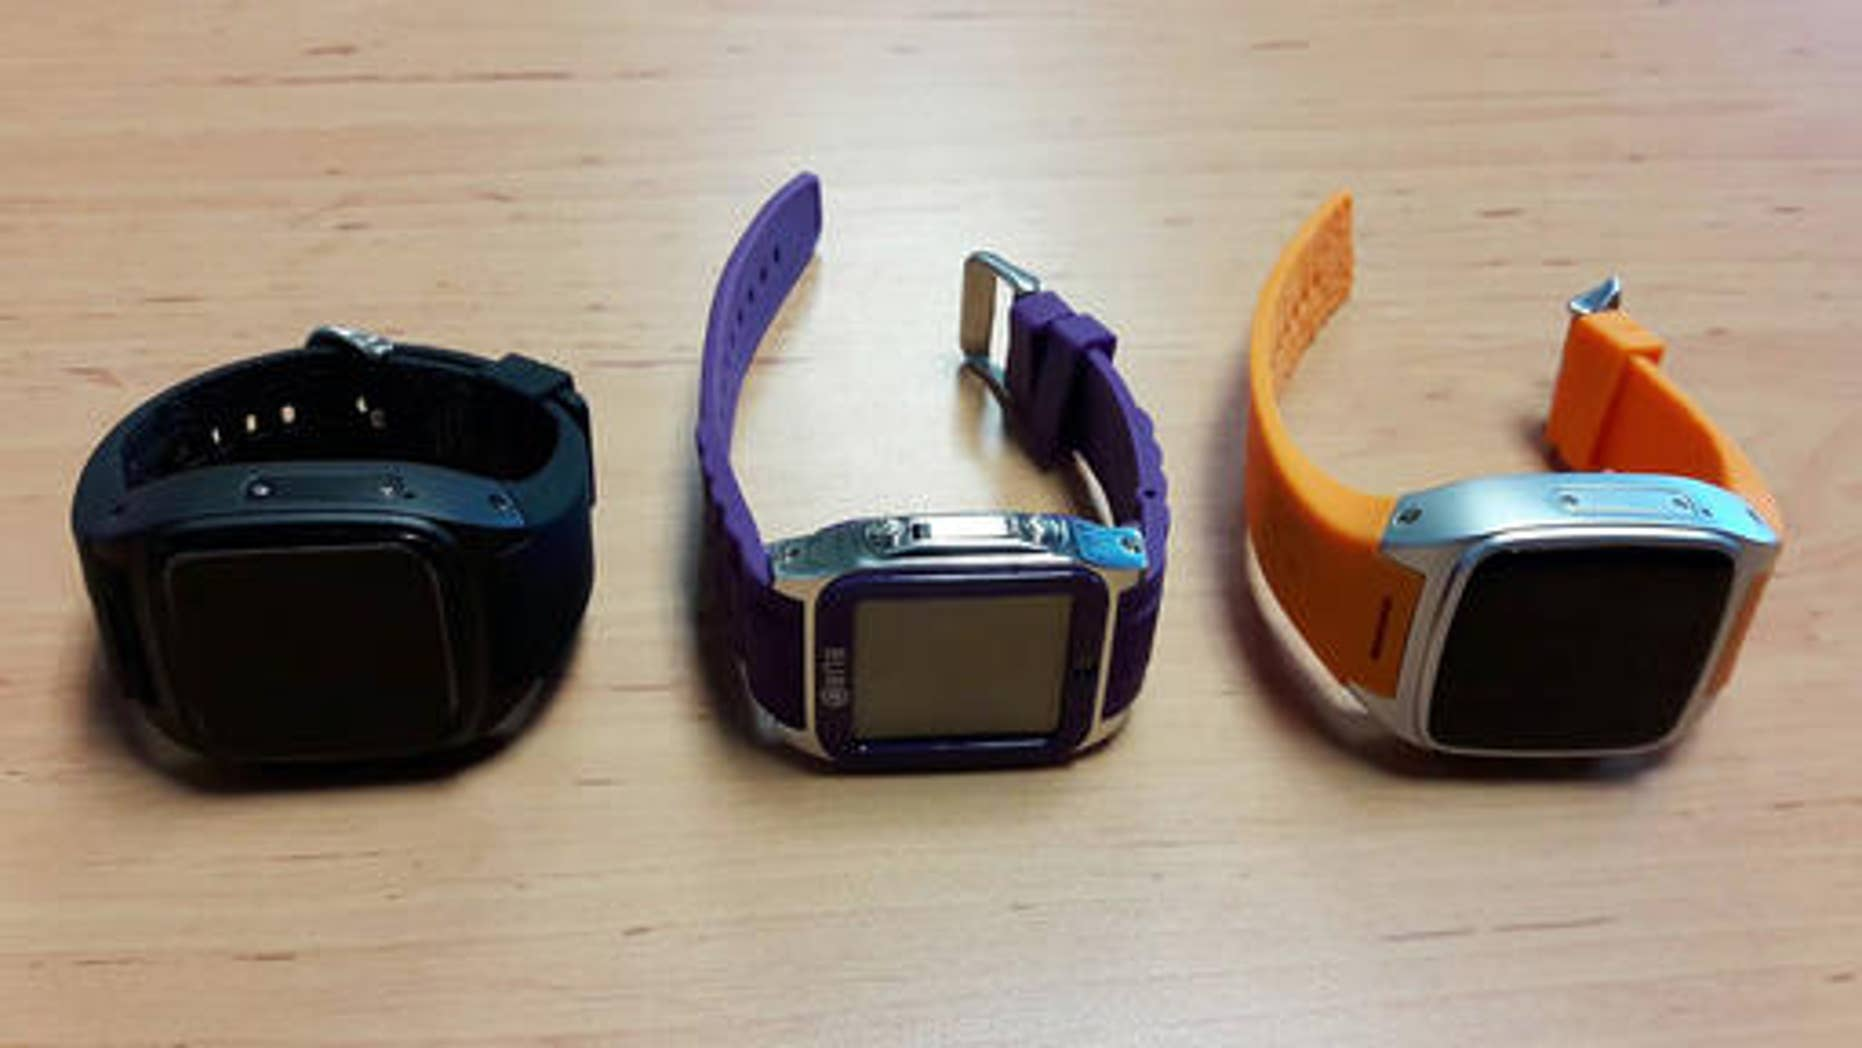 This Saturday May 7, 2016 photo by Asst. Prof. Pakarat Jumpanoi, shows three smartwatches used by students caught cheating in exams for admission to medical and dental faculties in Bangkok, Thailand. (Asst.Prof.Pakarat Jumpanoi/Rangsit University via AP)